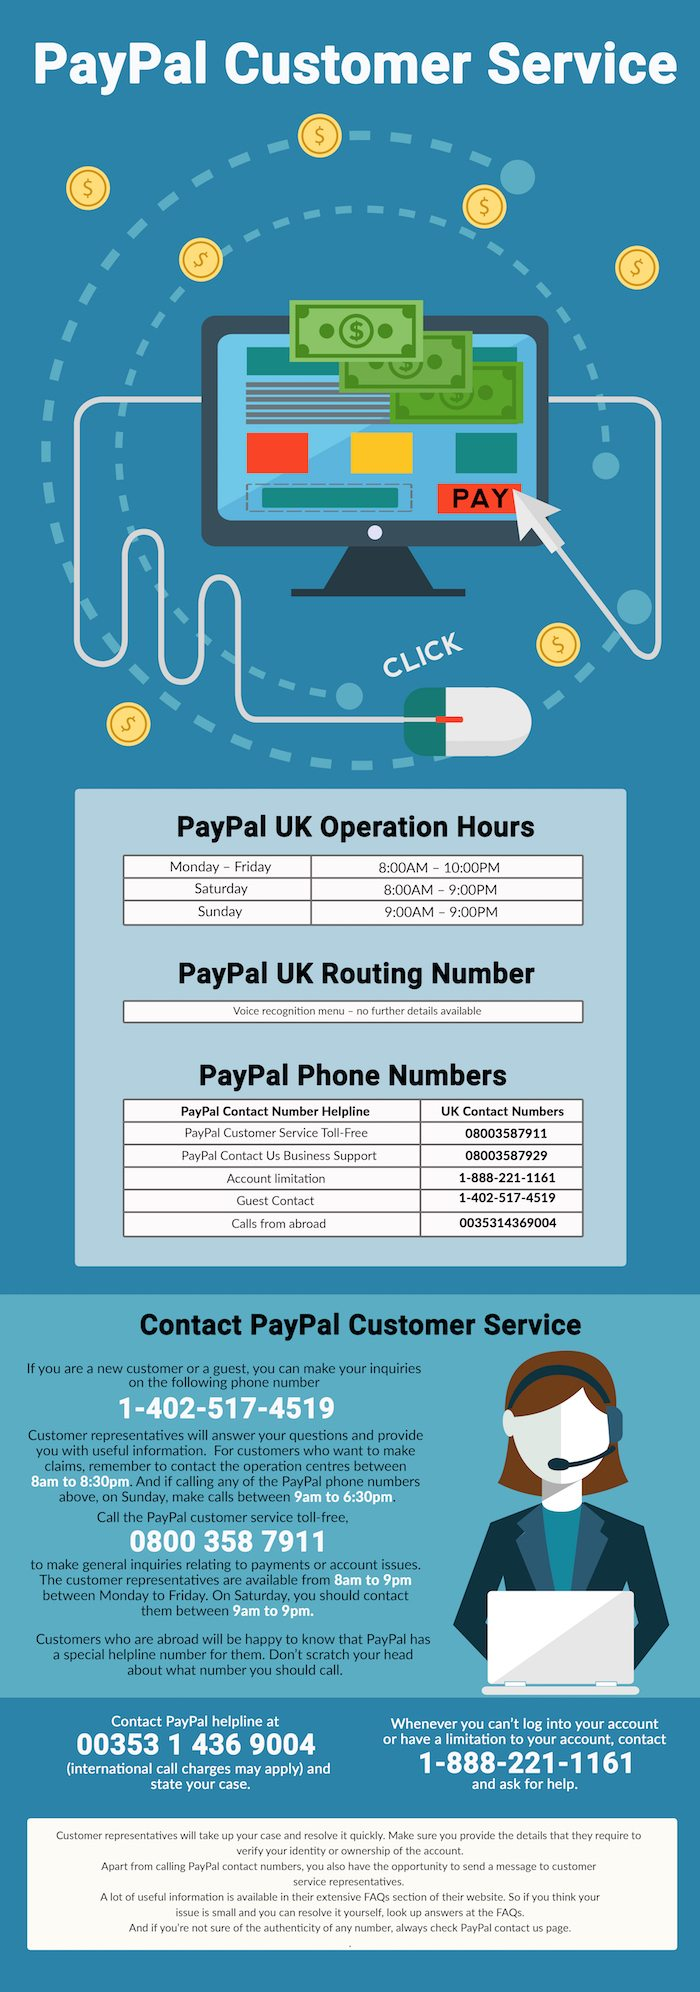 paypal contact number 24 7 uk  u2013 08443069131